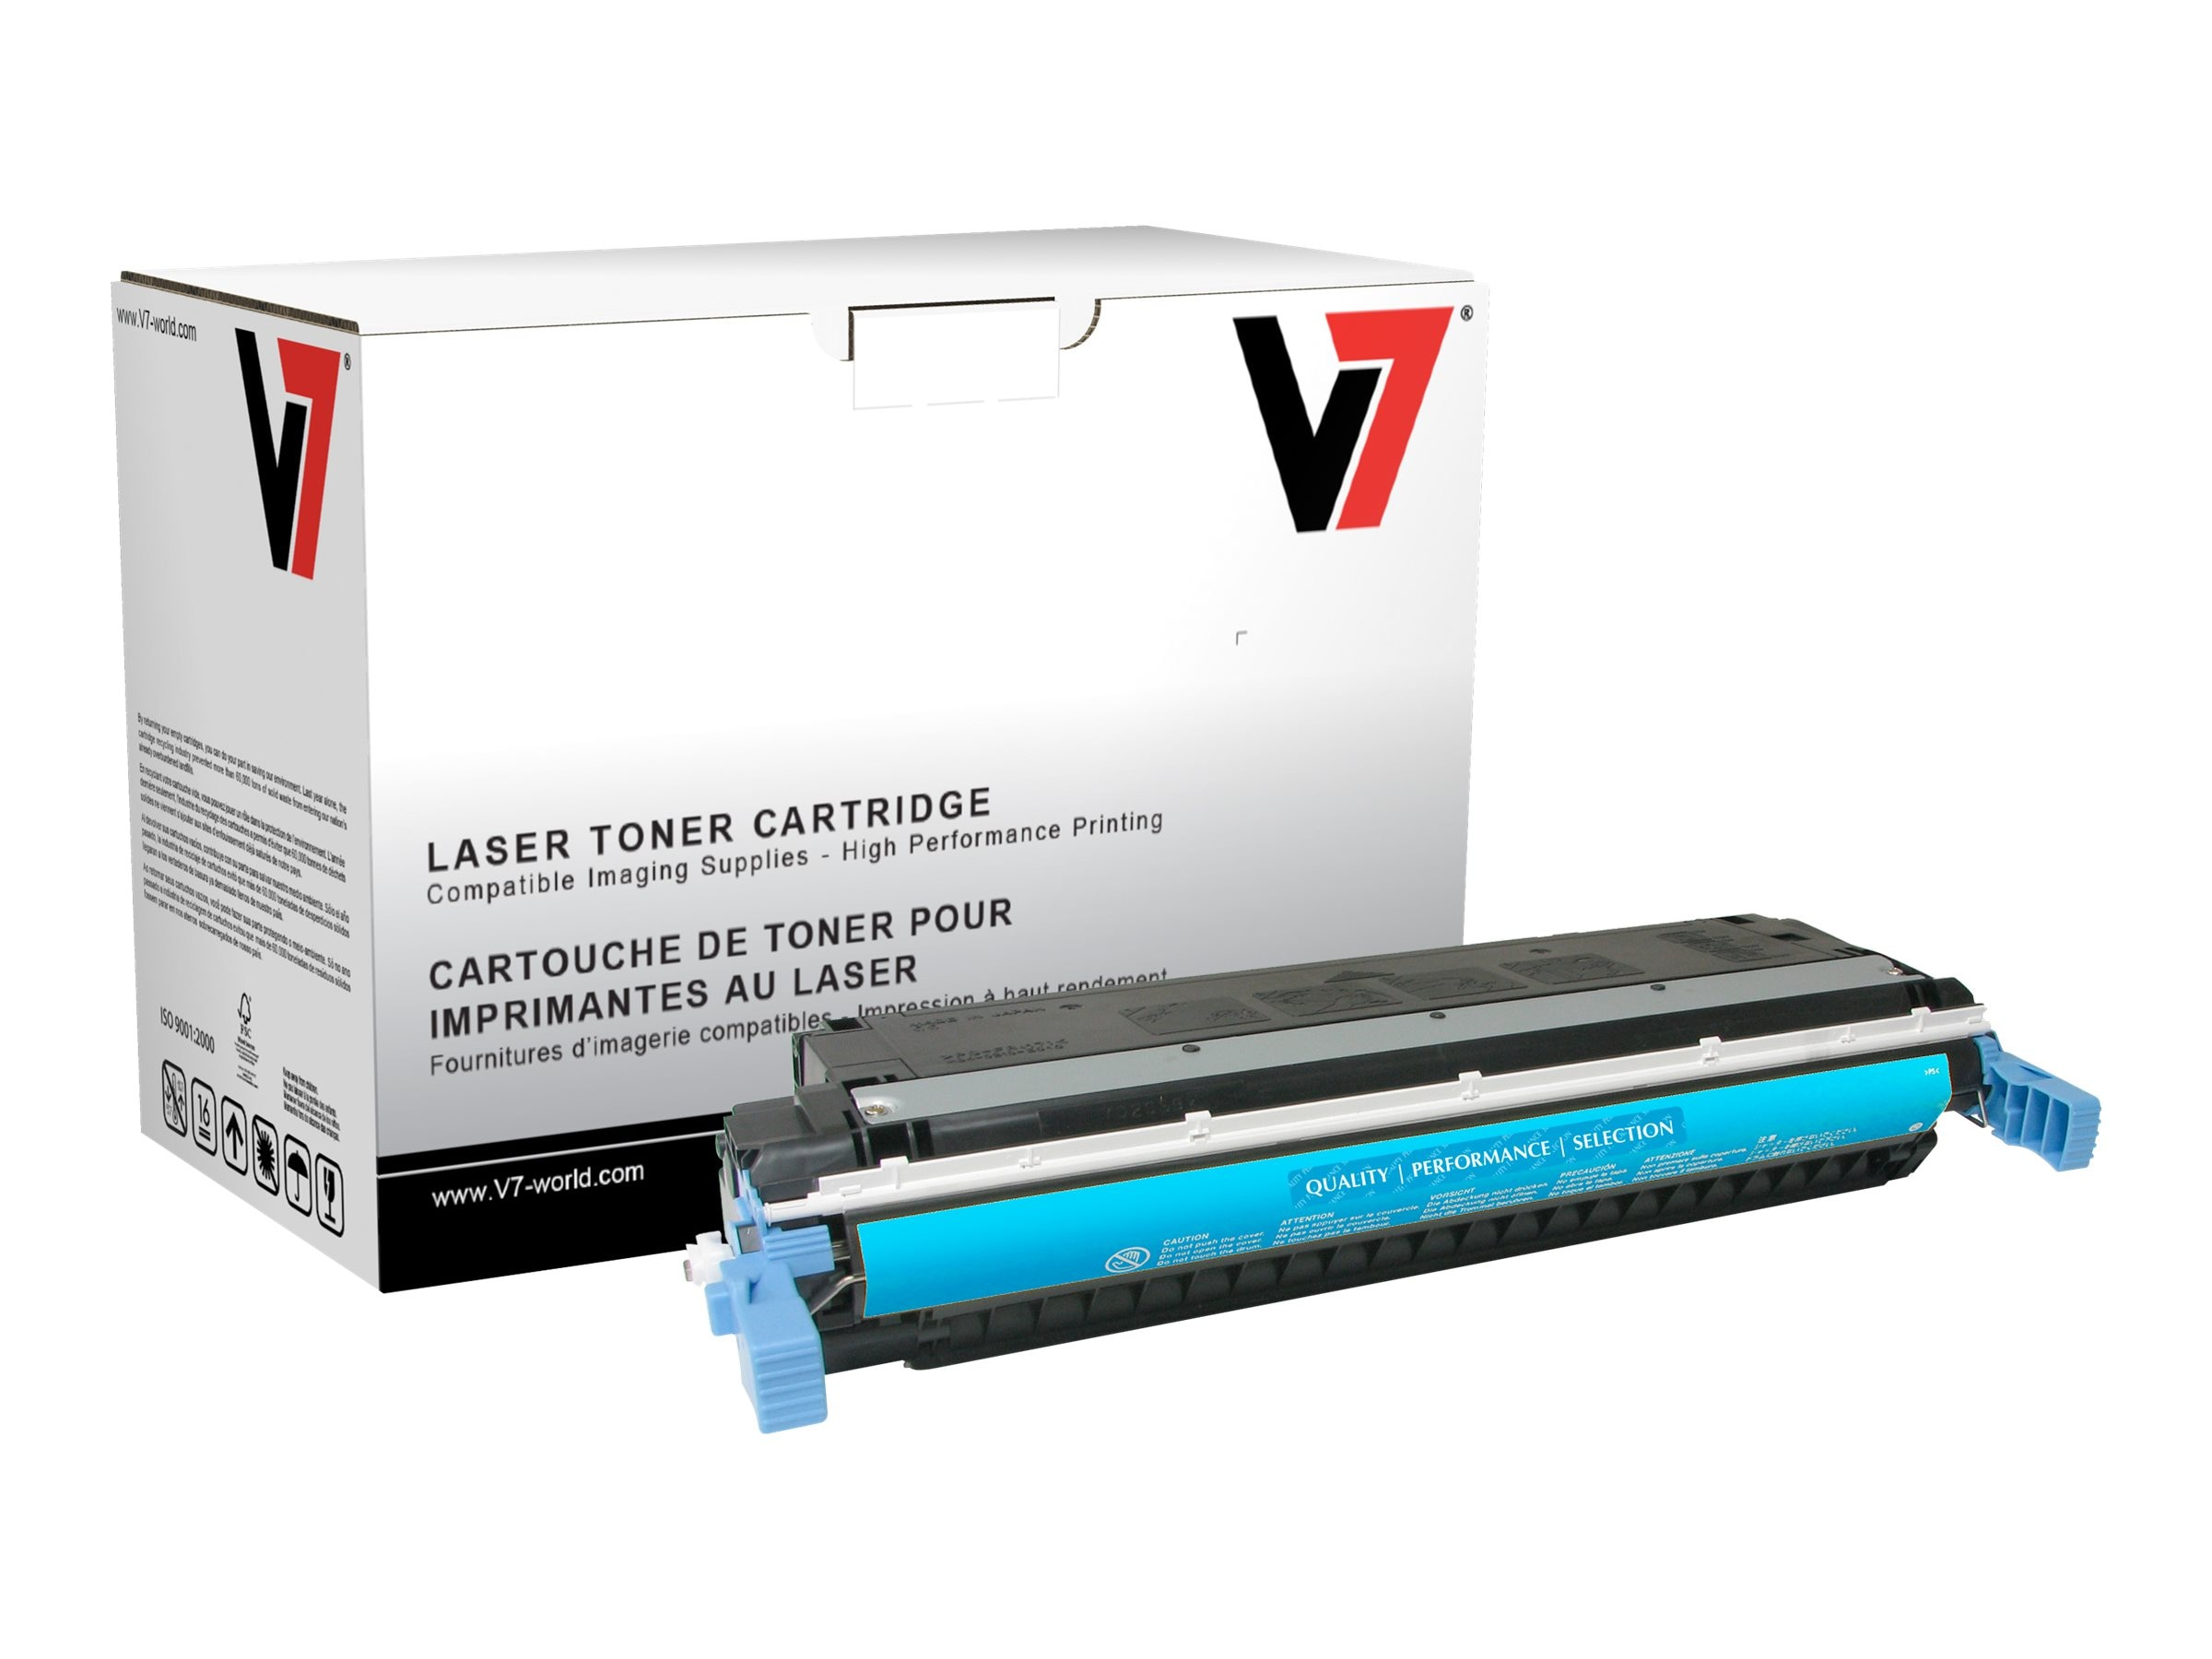 V7 C9731A Cyan Toner Cartridge for HP Color LaserJet 5500 (TAA Compliant), THC29731A